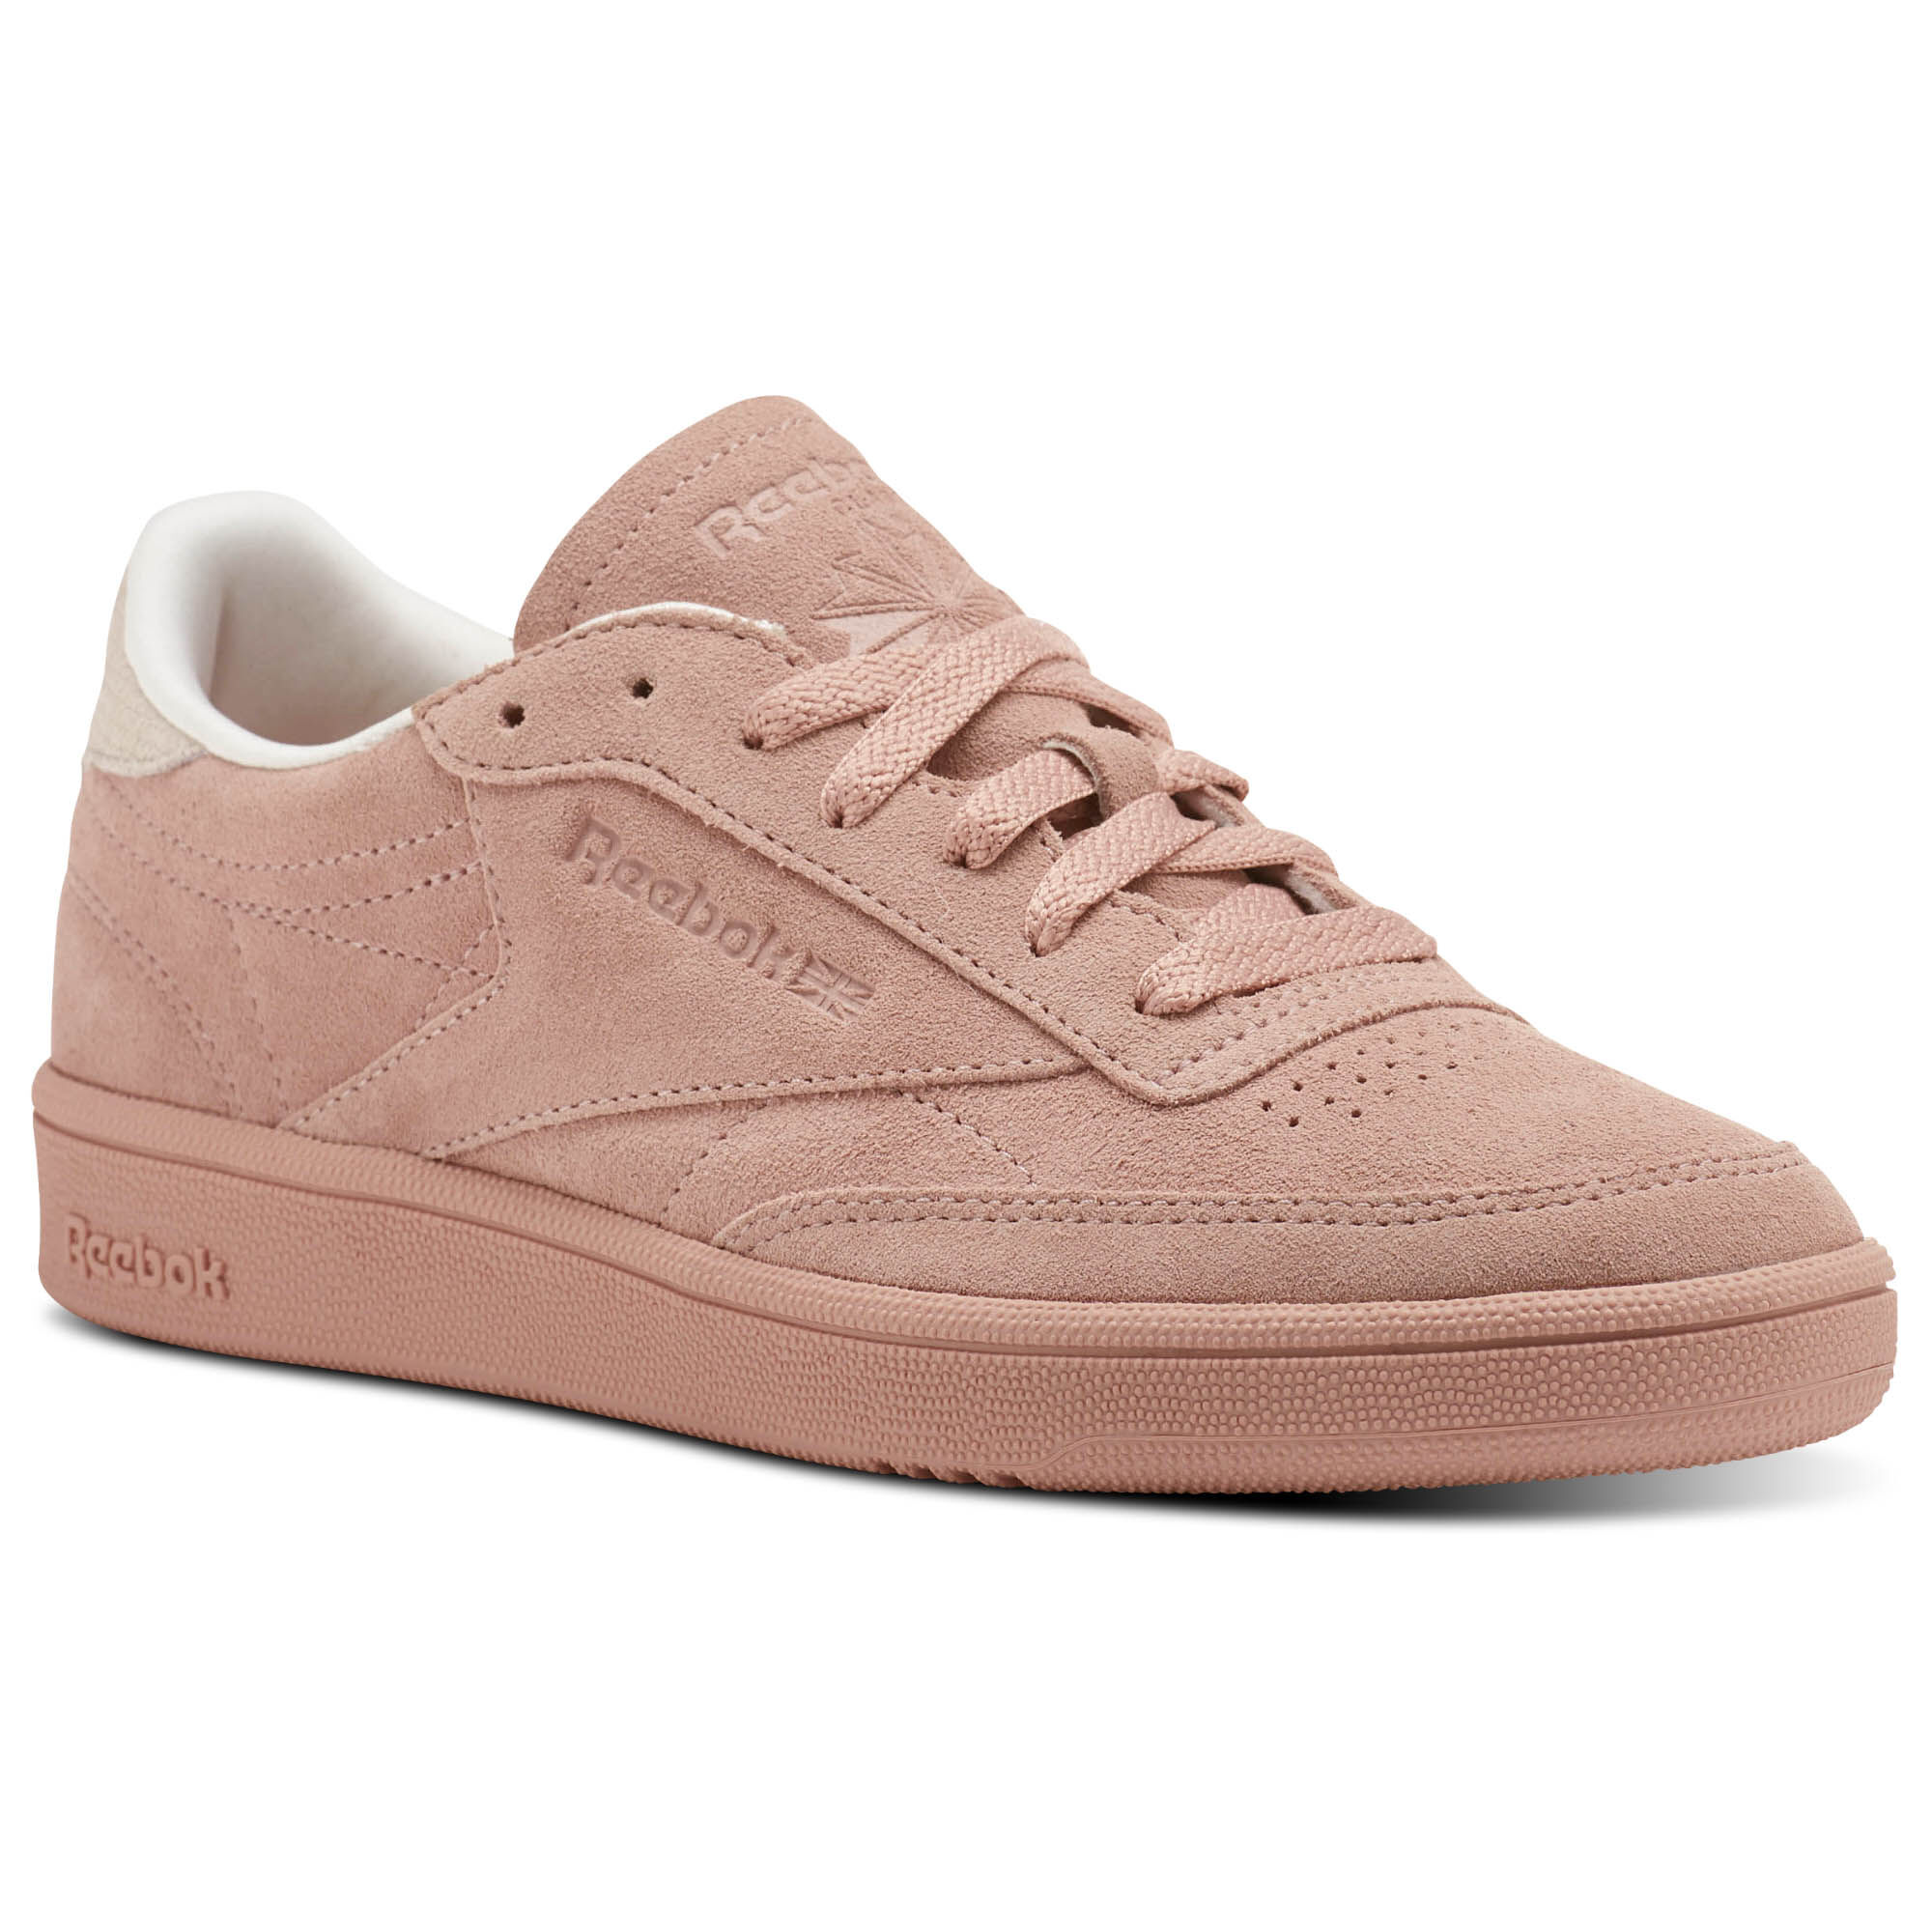 Club 85 C Nbk Rose Reebok